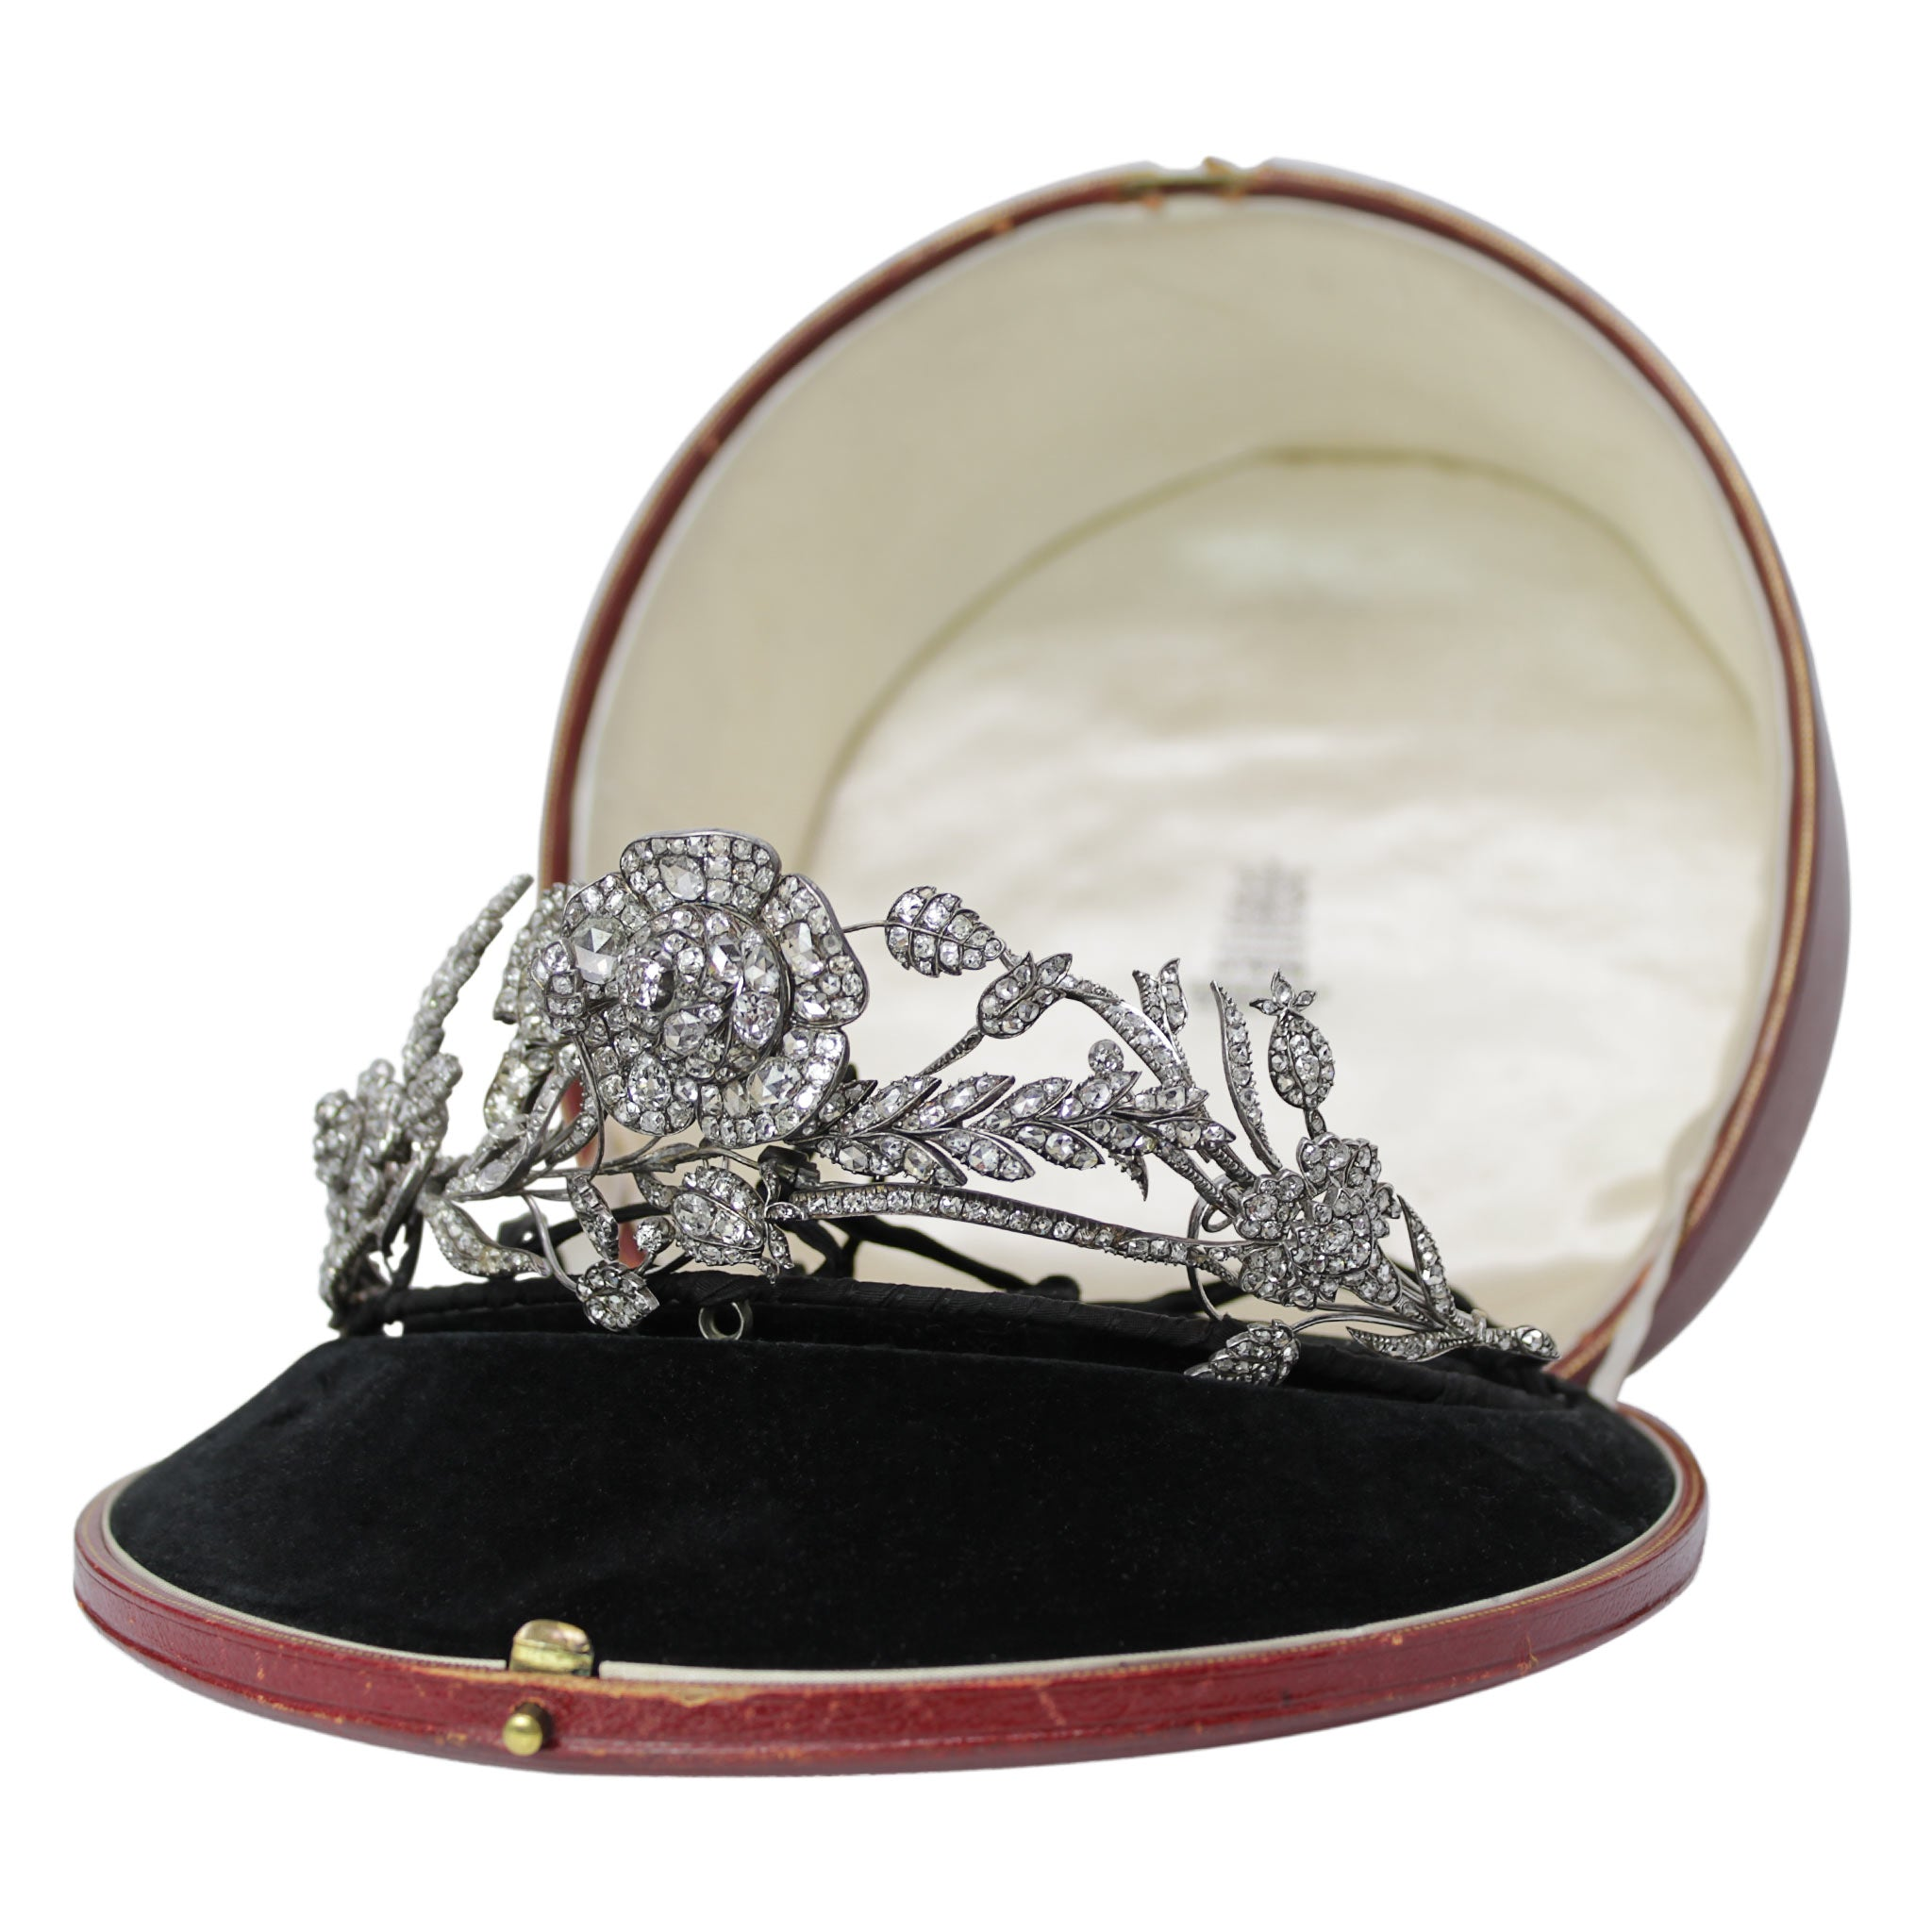 The Queen's Accessory  - Antique Diamond Floral Tiara Hair Piece Ties